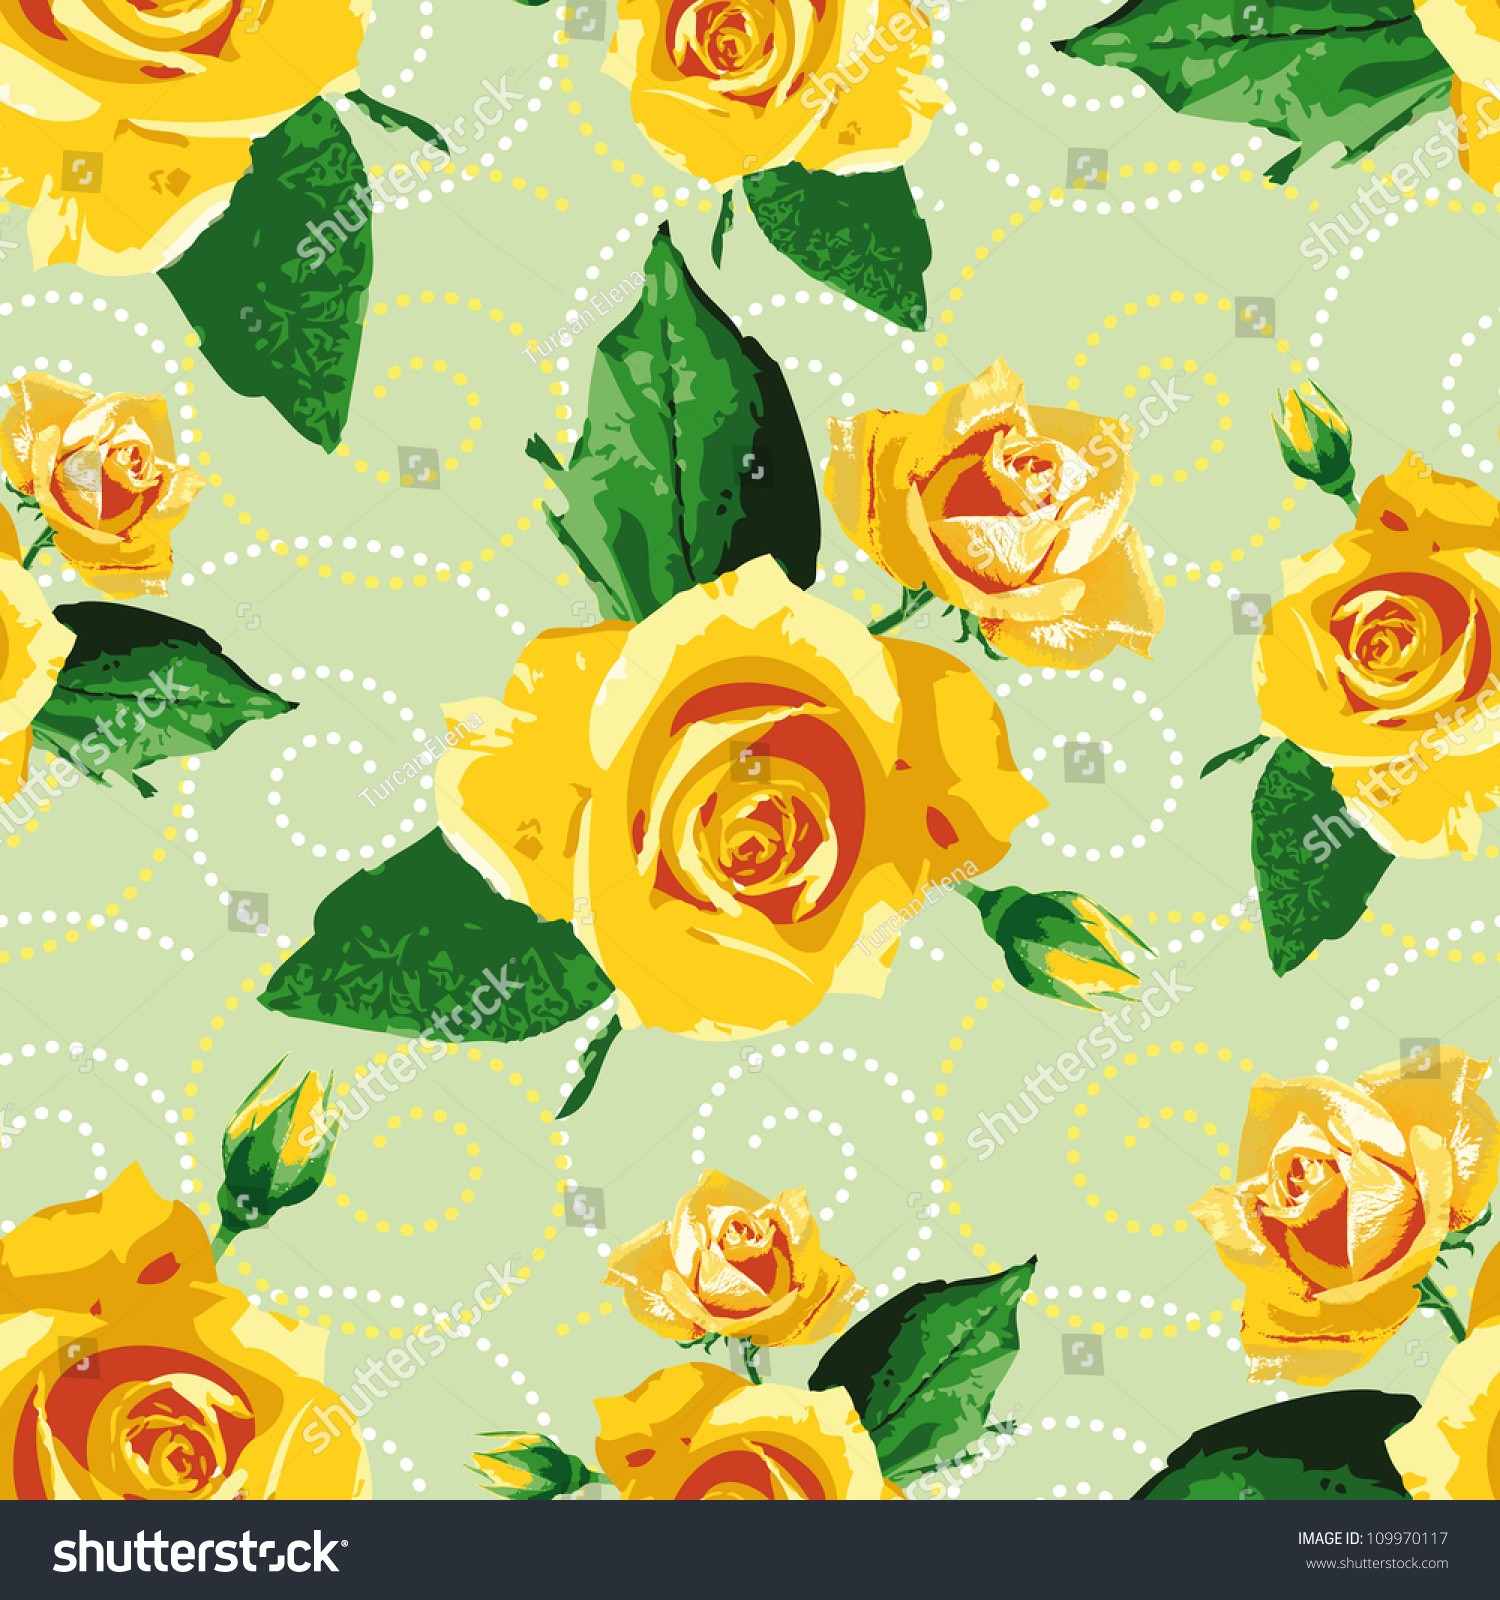 Wallpaper Of Yellow Rose: Seamless Background/ Pattern/ Wallpapers With Yellow Rose